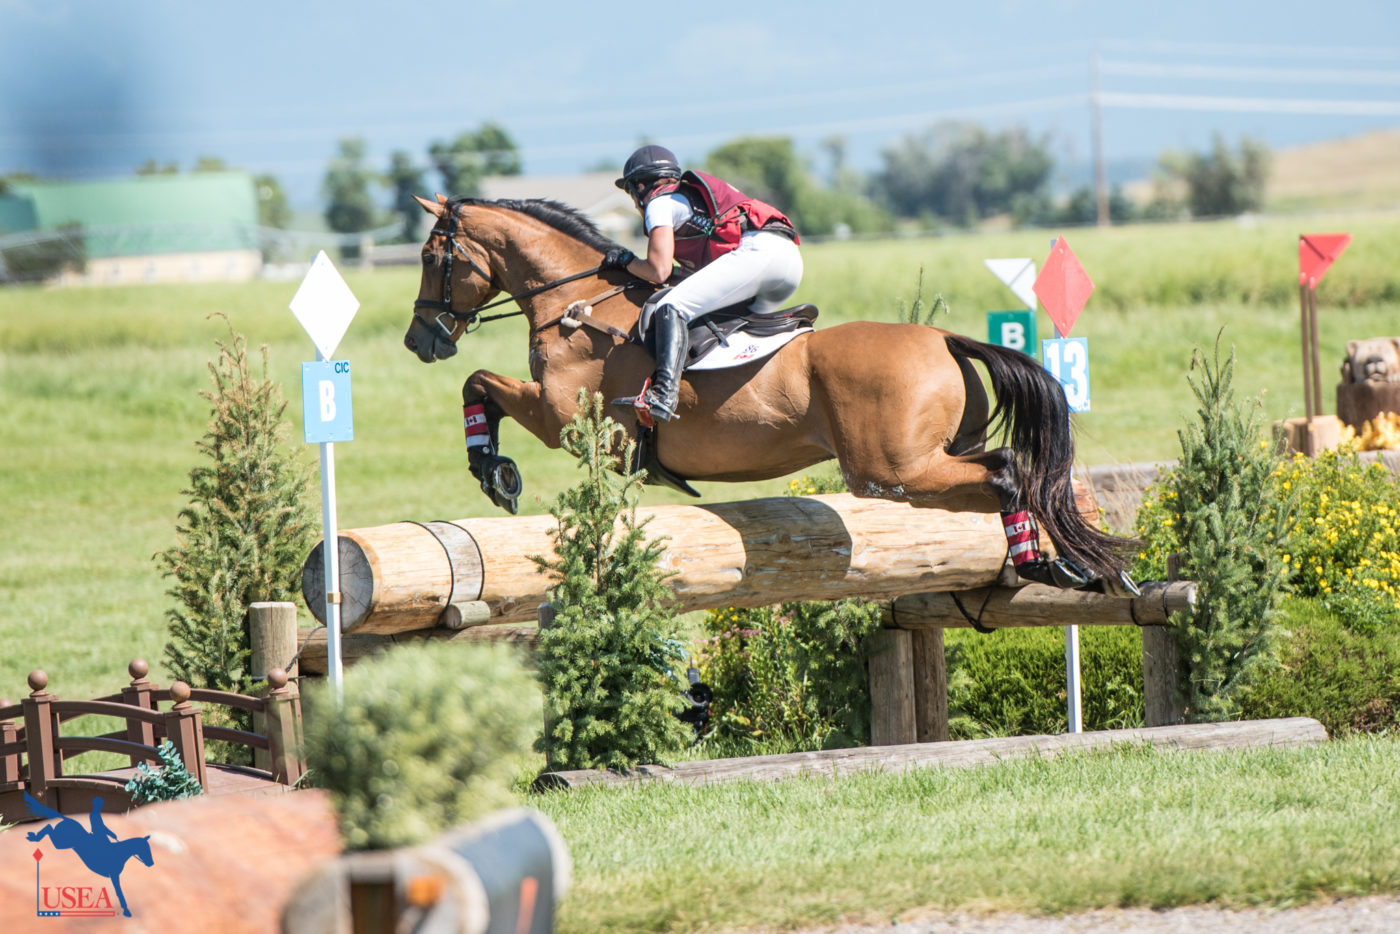 CCI3* - 4th - Holly Jacks Smither and More Inspiration